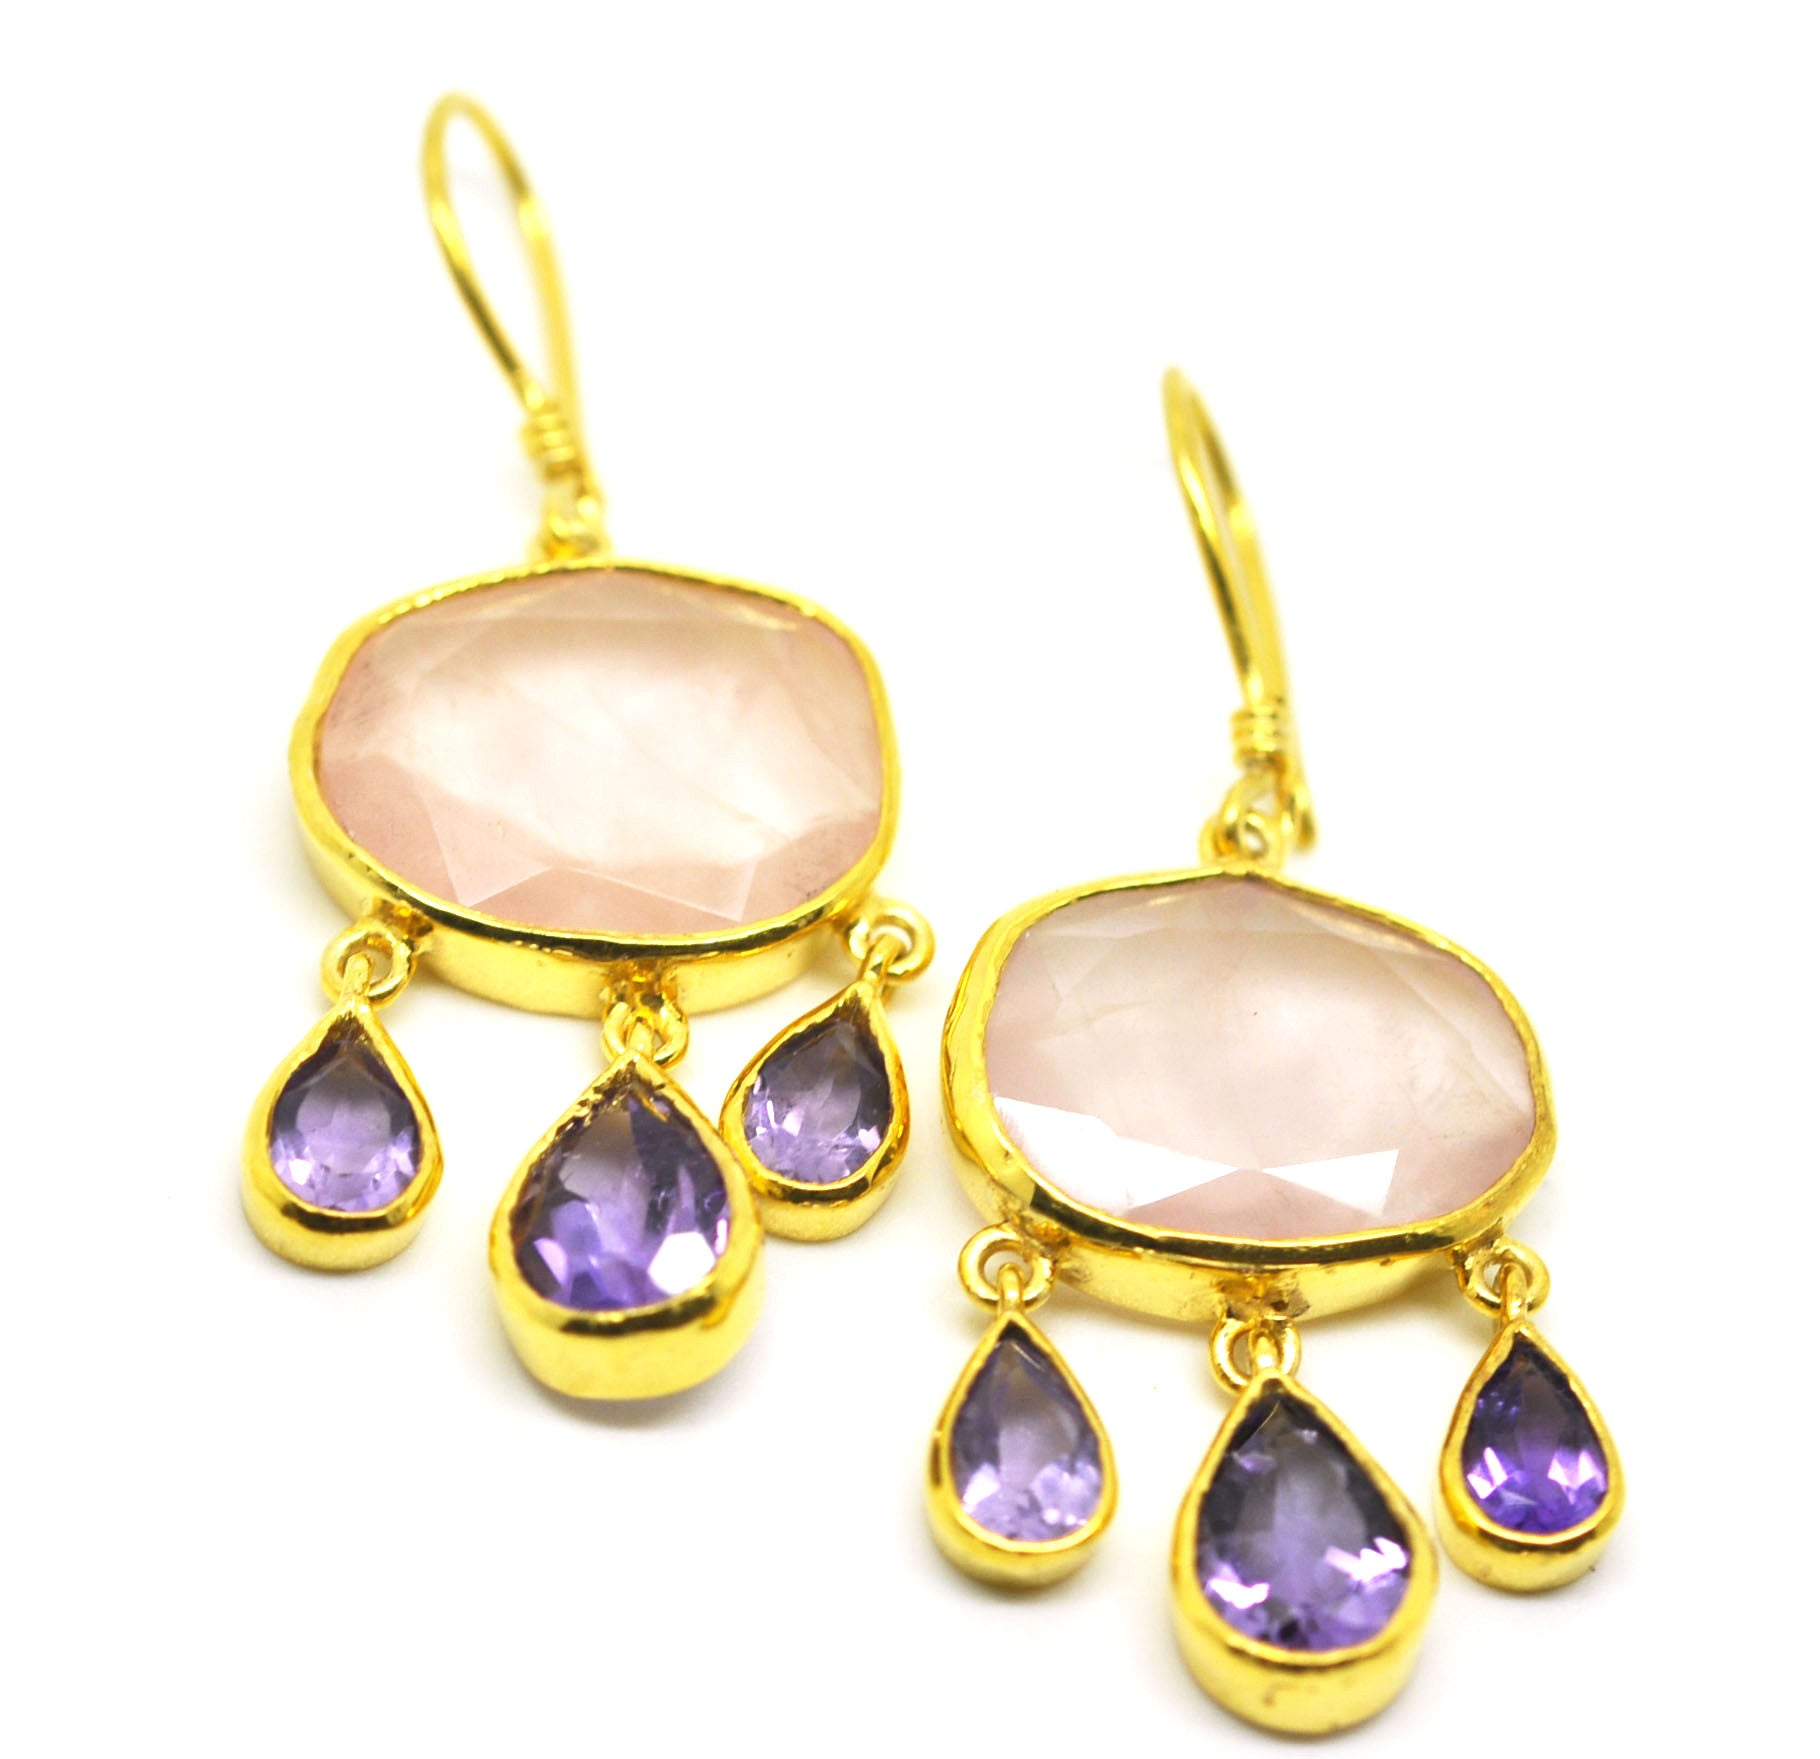 ON SALE Rose quartz and Amethyst earrings (clearance price)